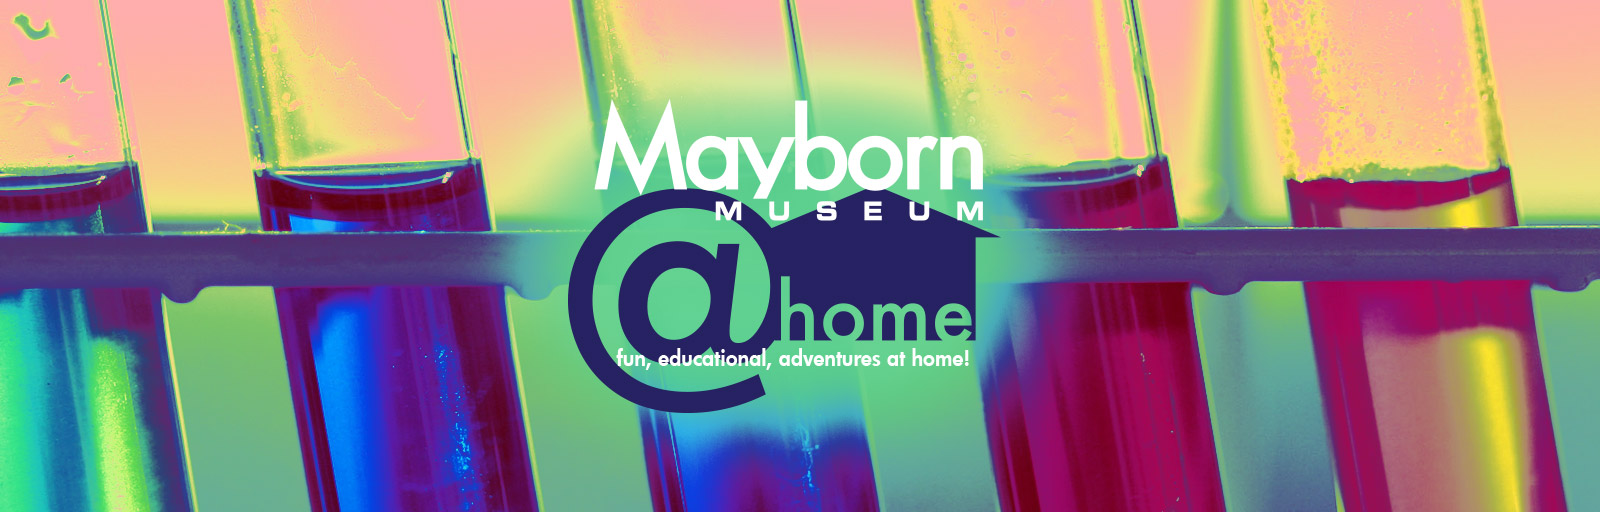 maybornathome-webslider